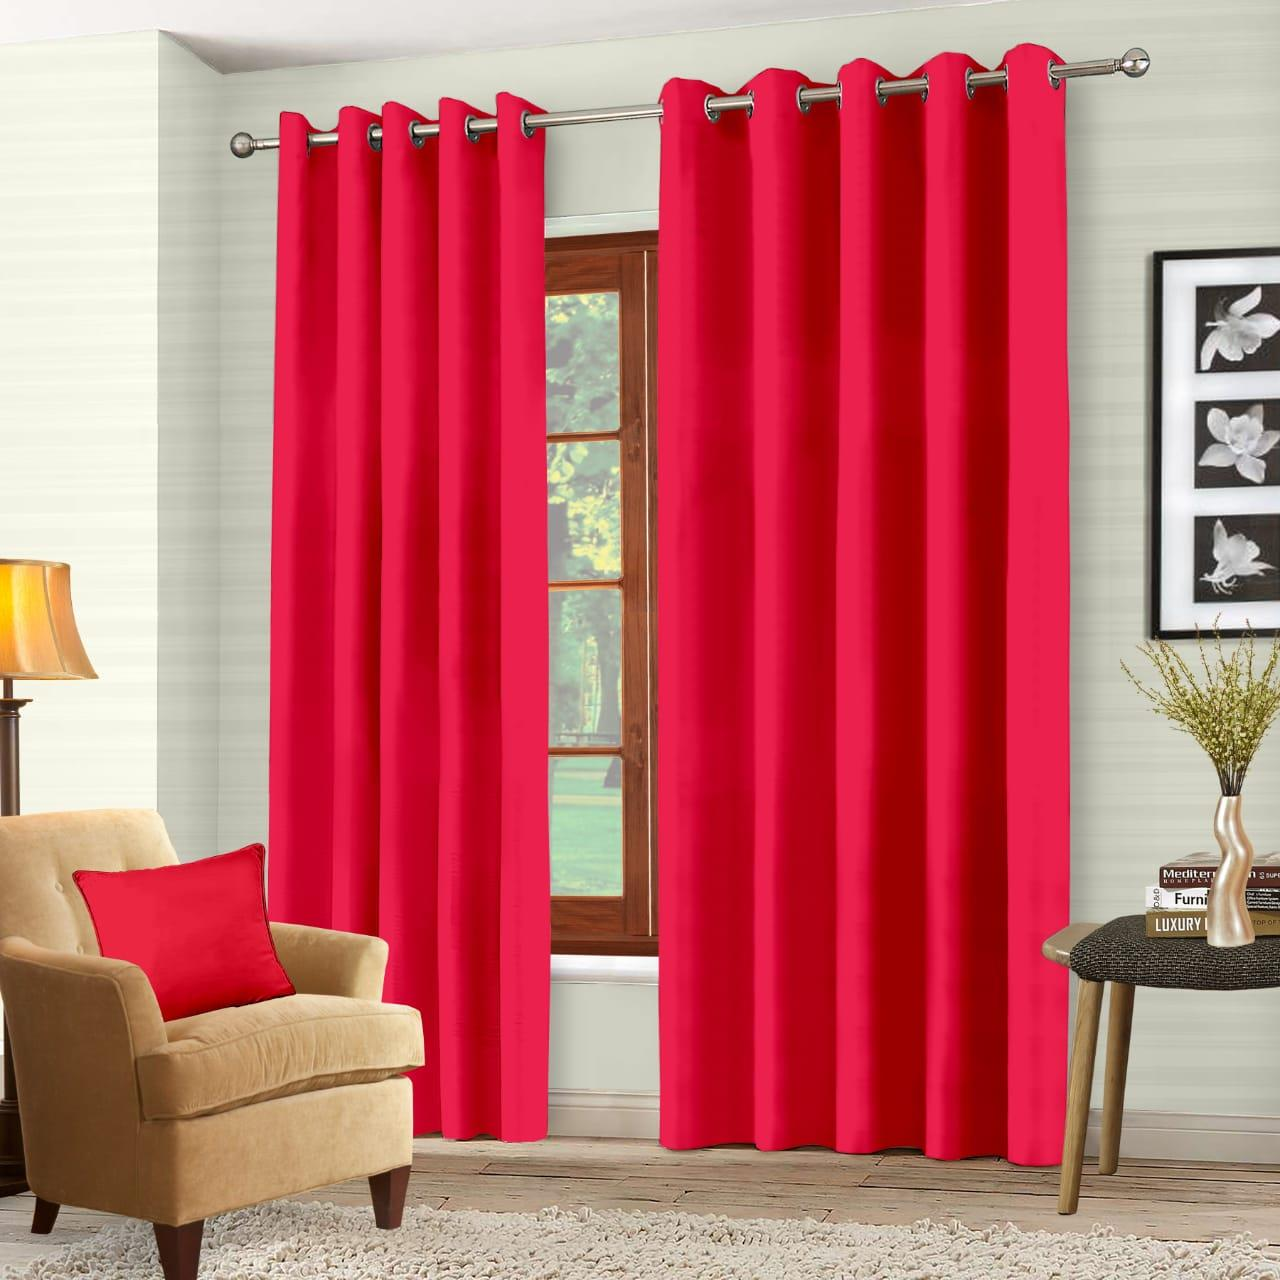 Luxury-Thermal-Blackout-Eyelet-Ring-Top-Curtains-Pair-with-tie-backs thumbnail 39